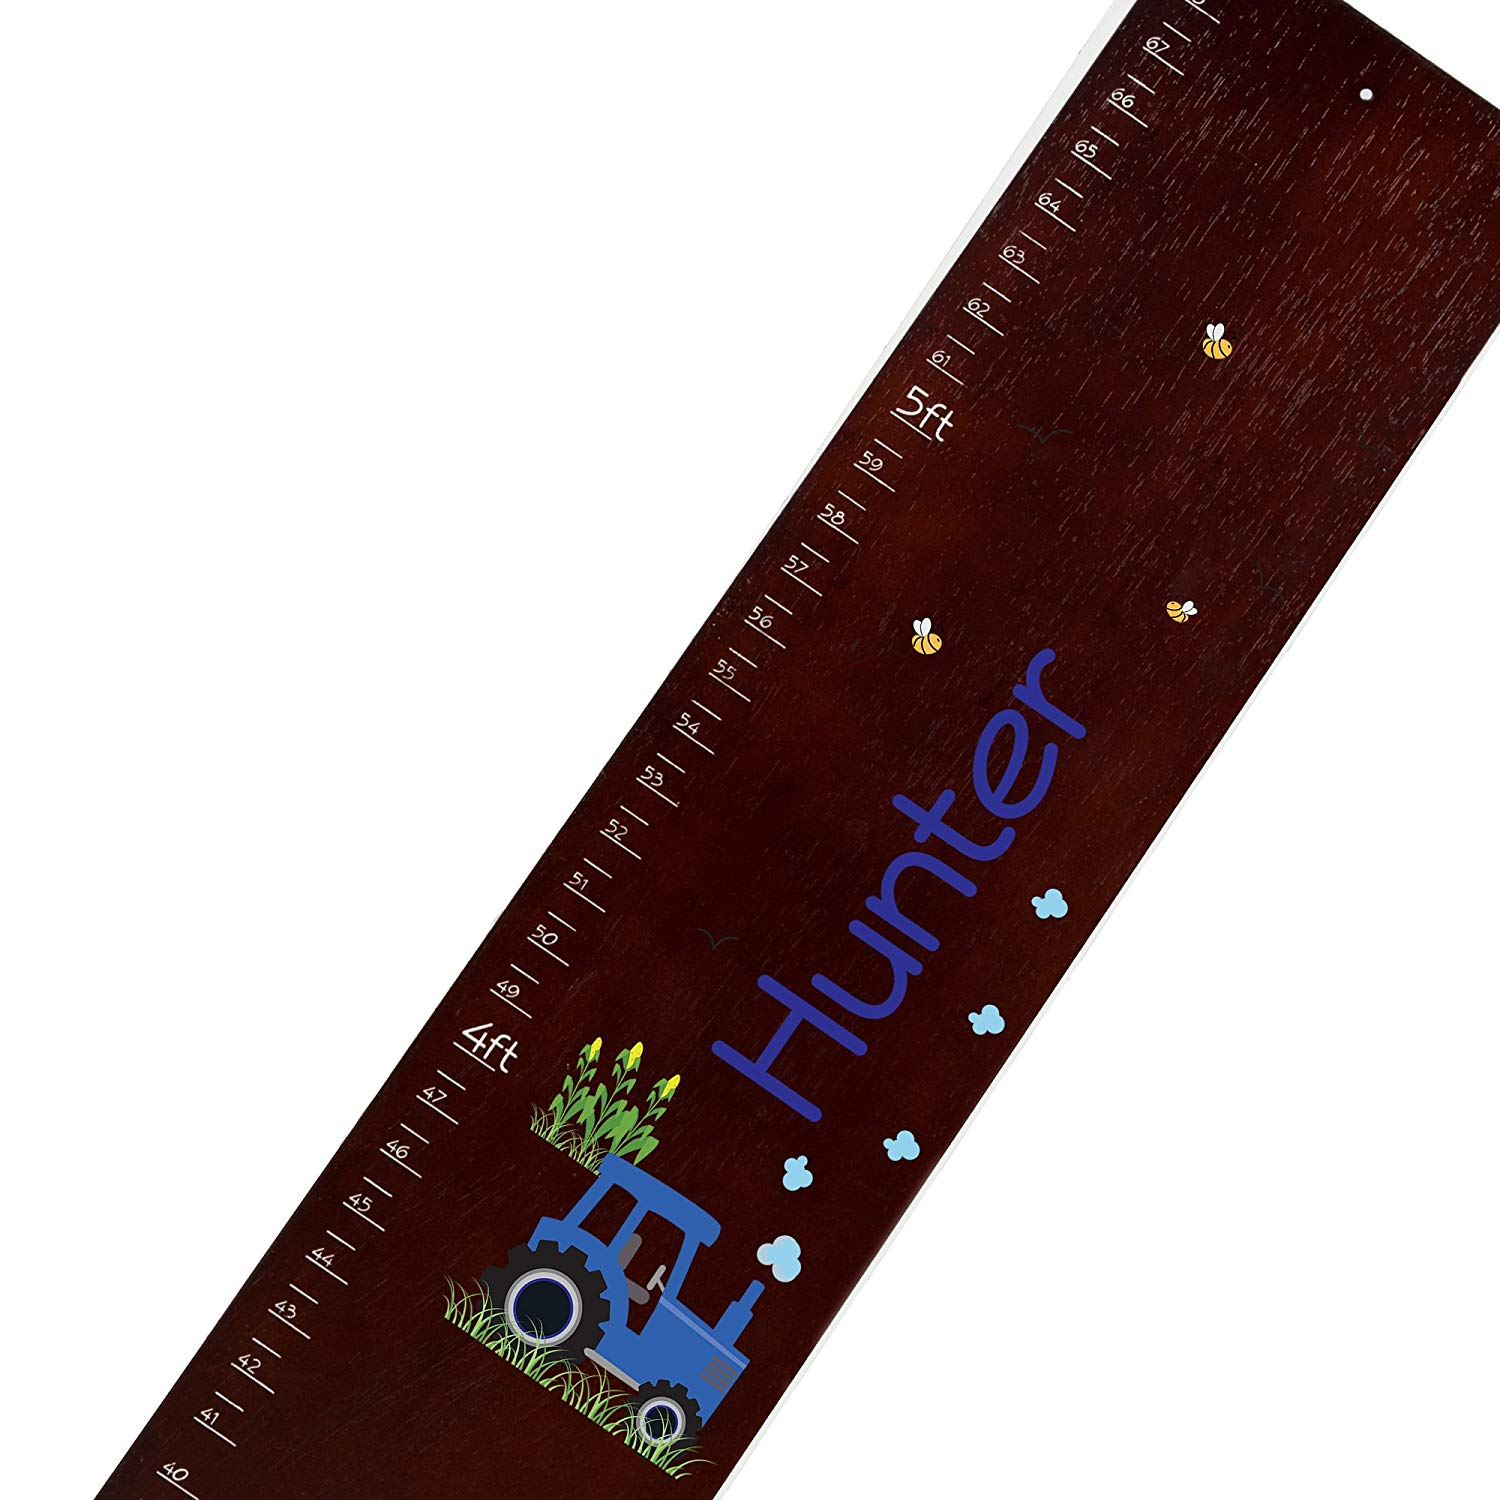 Personalized espresso Blue Tractor childrens wooden growth chart